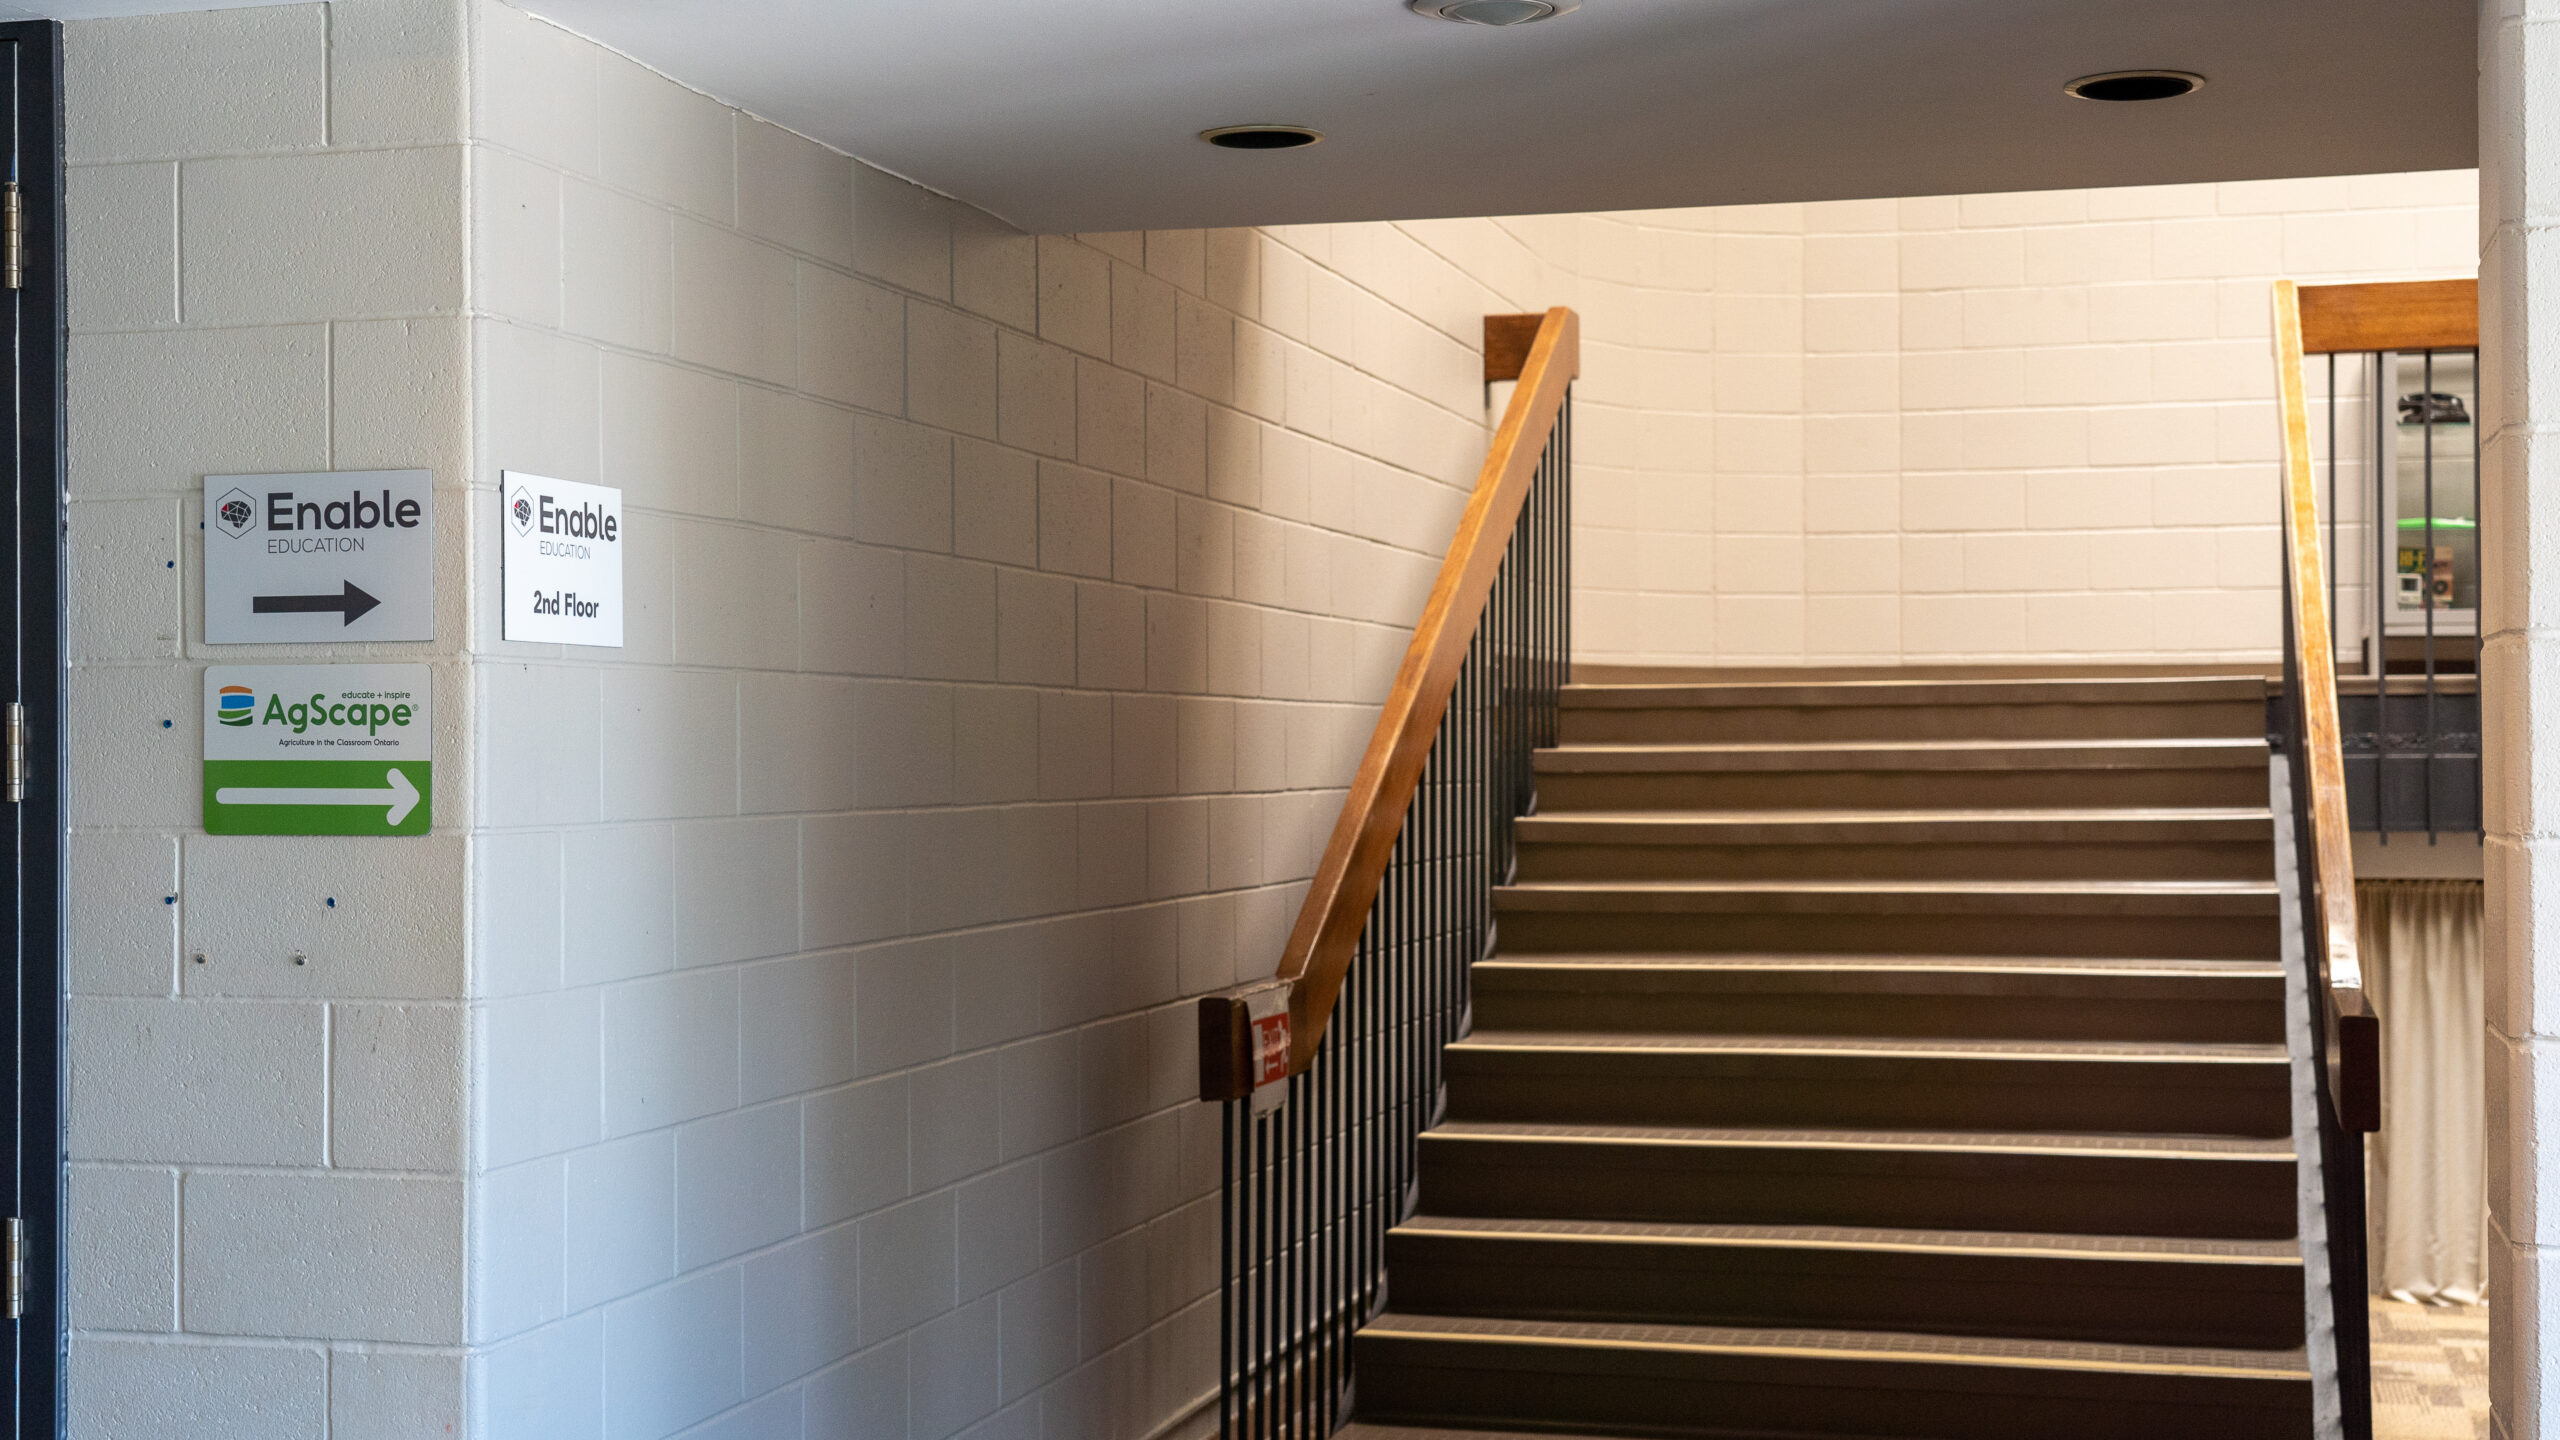 Inside, use the stairs to your right to reach the second floor. There is also an elevator to the right of the stairs.